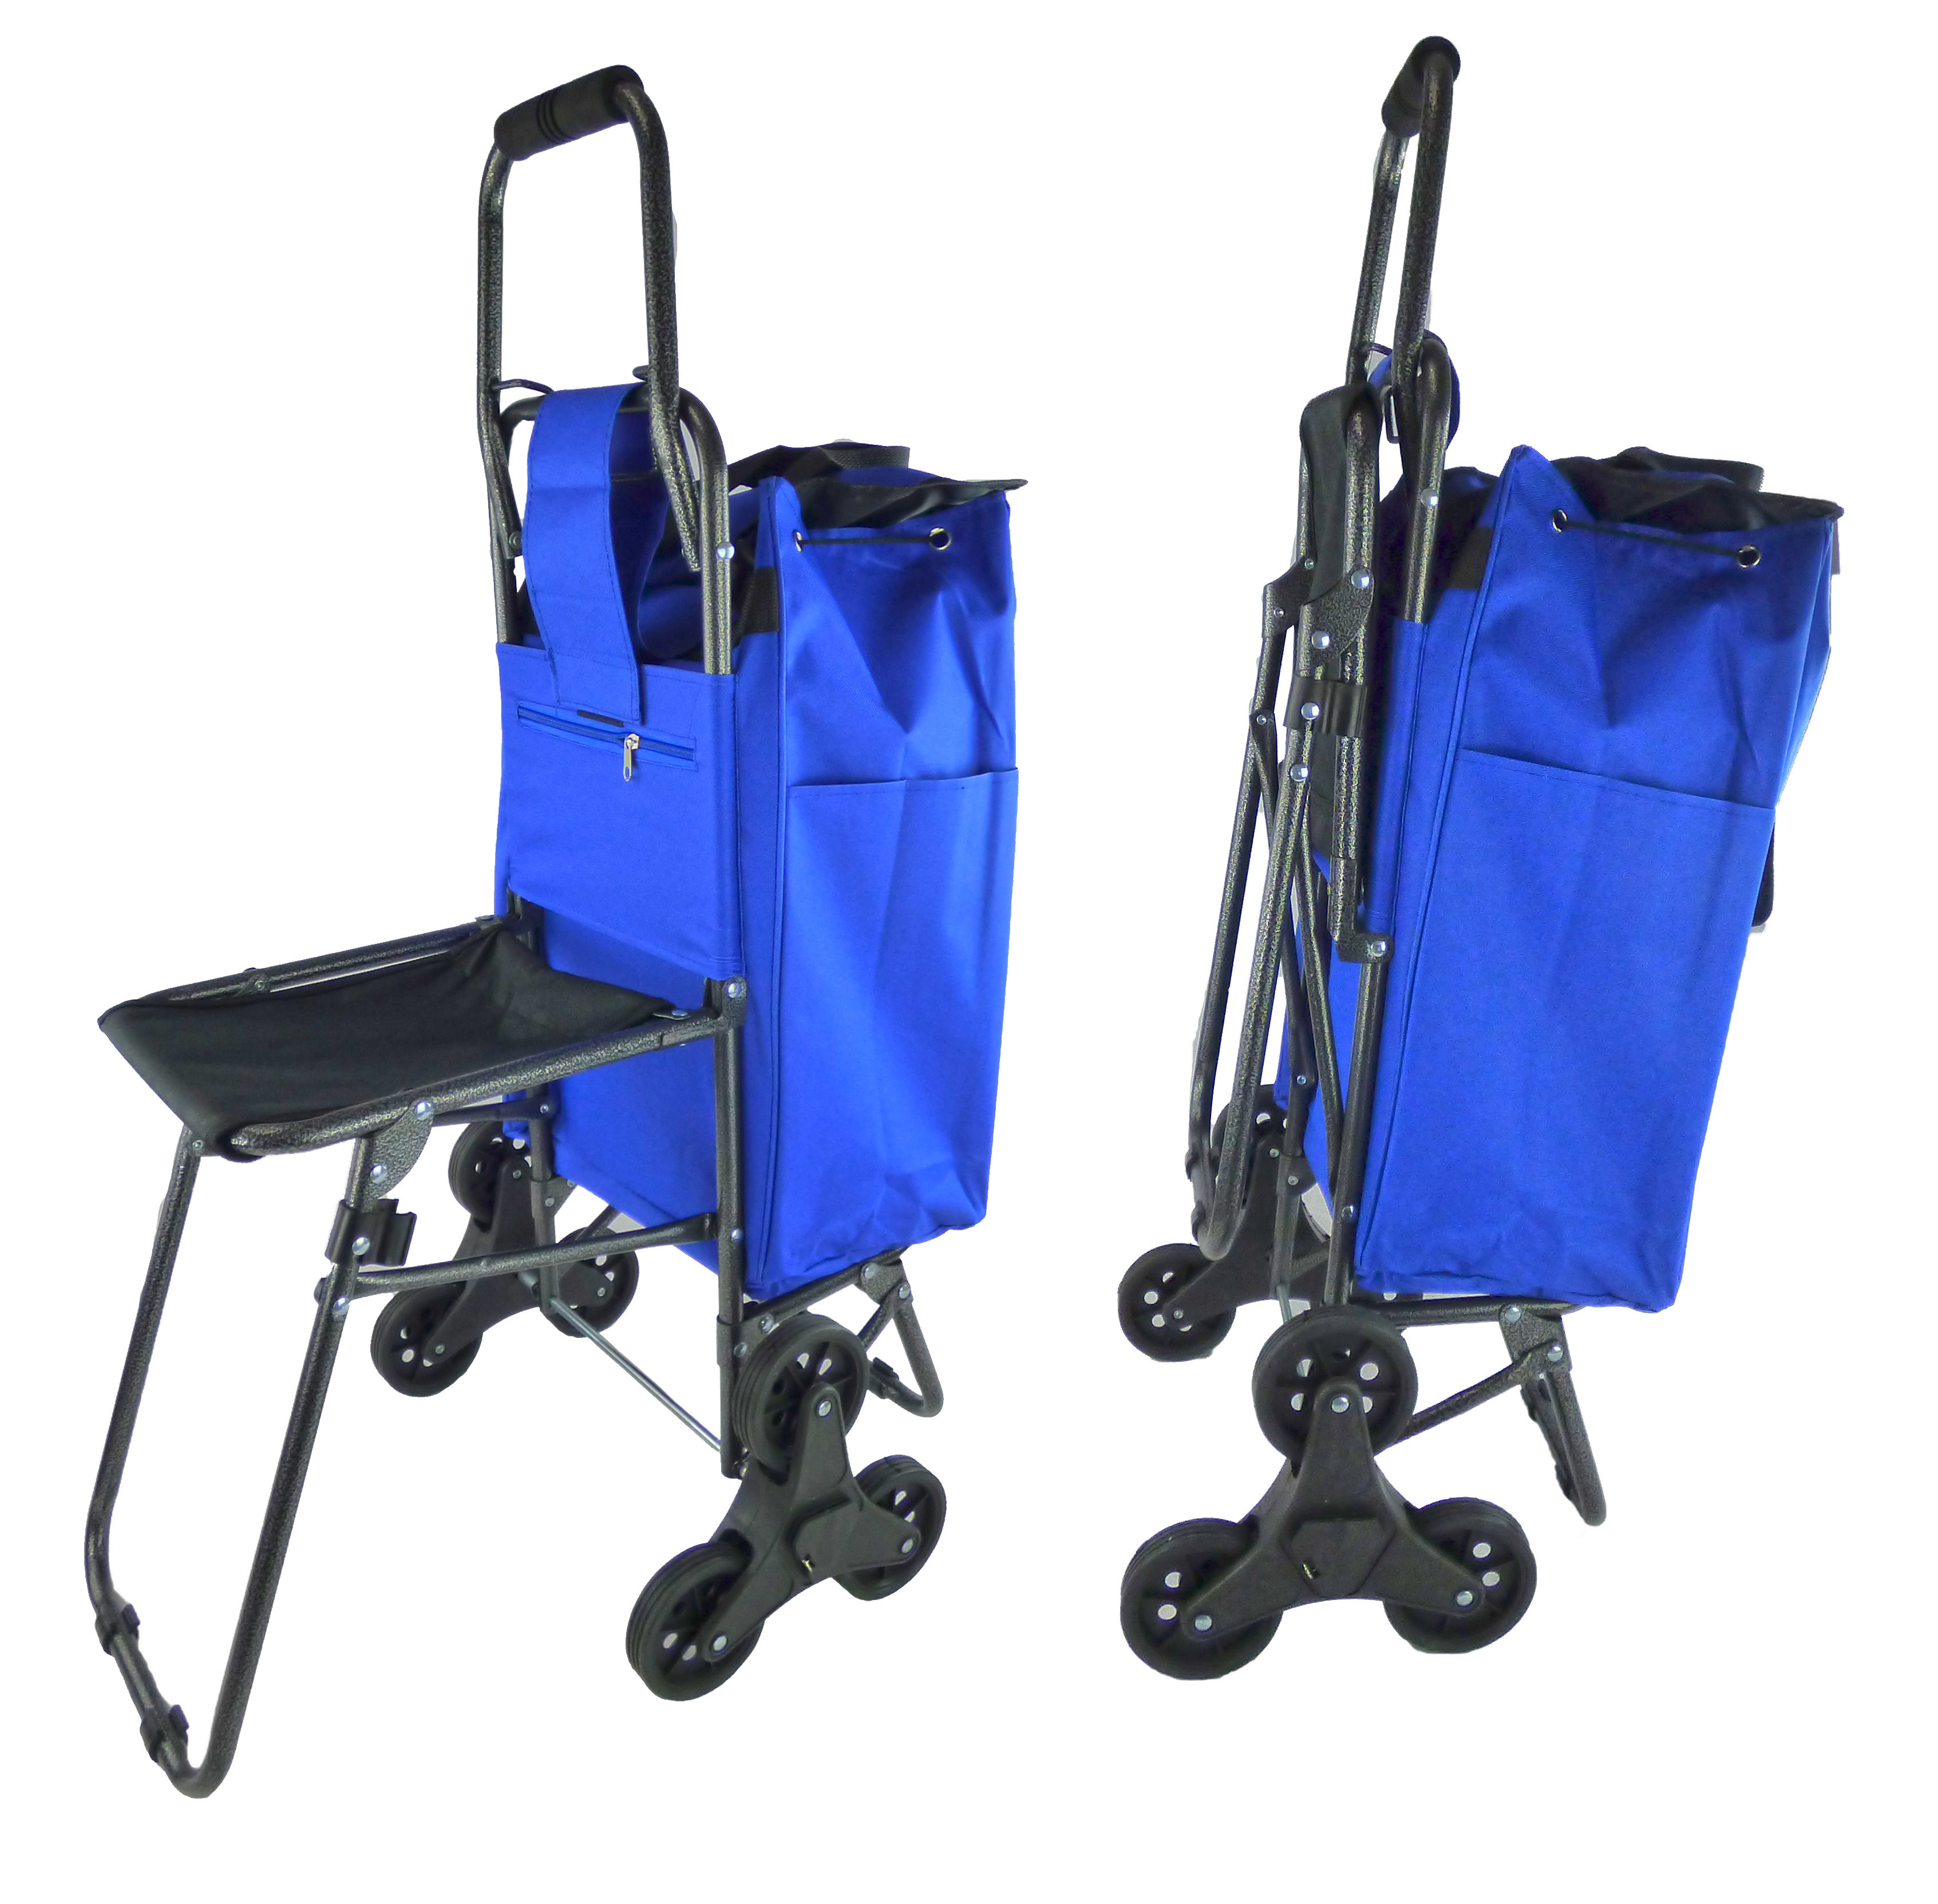 Trolley Dolly Stair Climber Cart With Seat Tri Wheel Climbing Folding Grocery Ping Seen On Tv